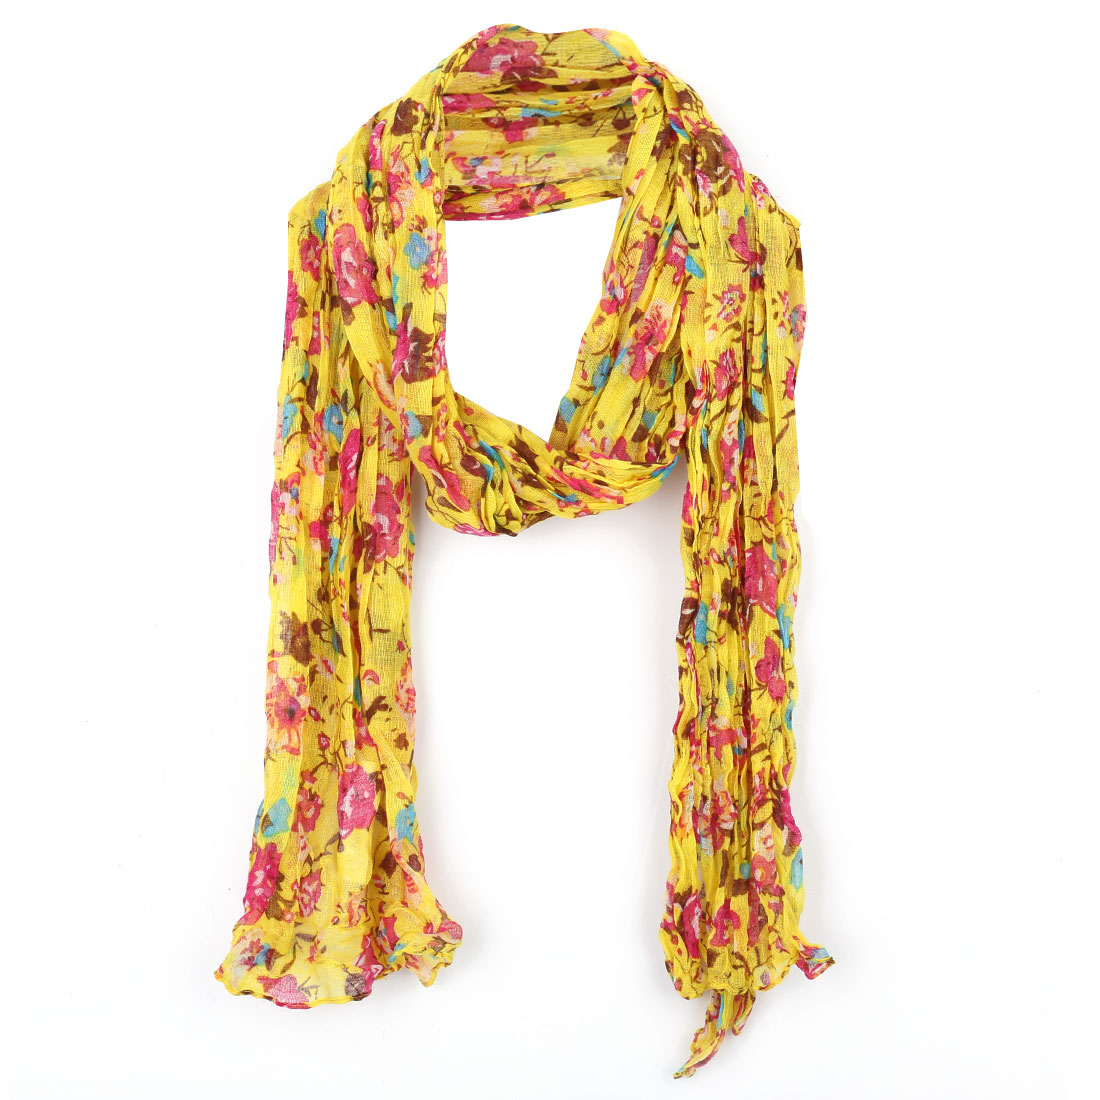 Girls Floral Prints Semi Sheer Winter Scarf Yellow Fuchsia